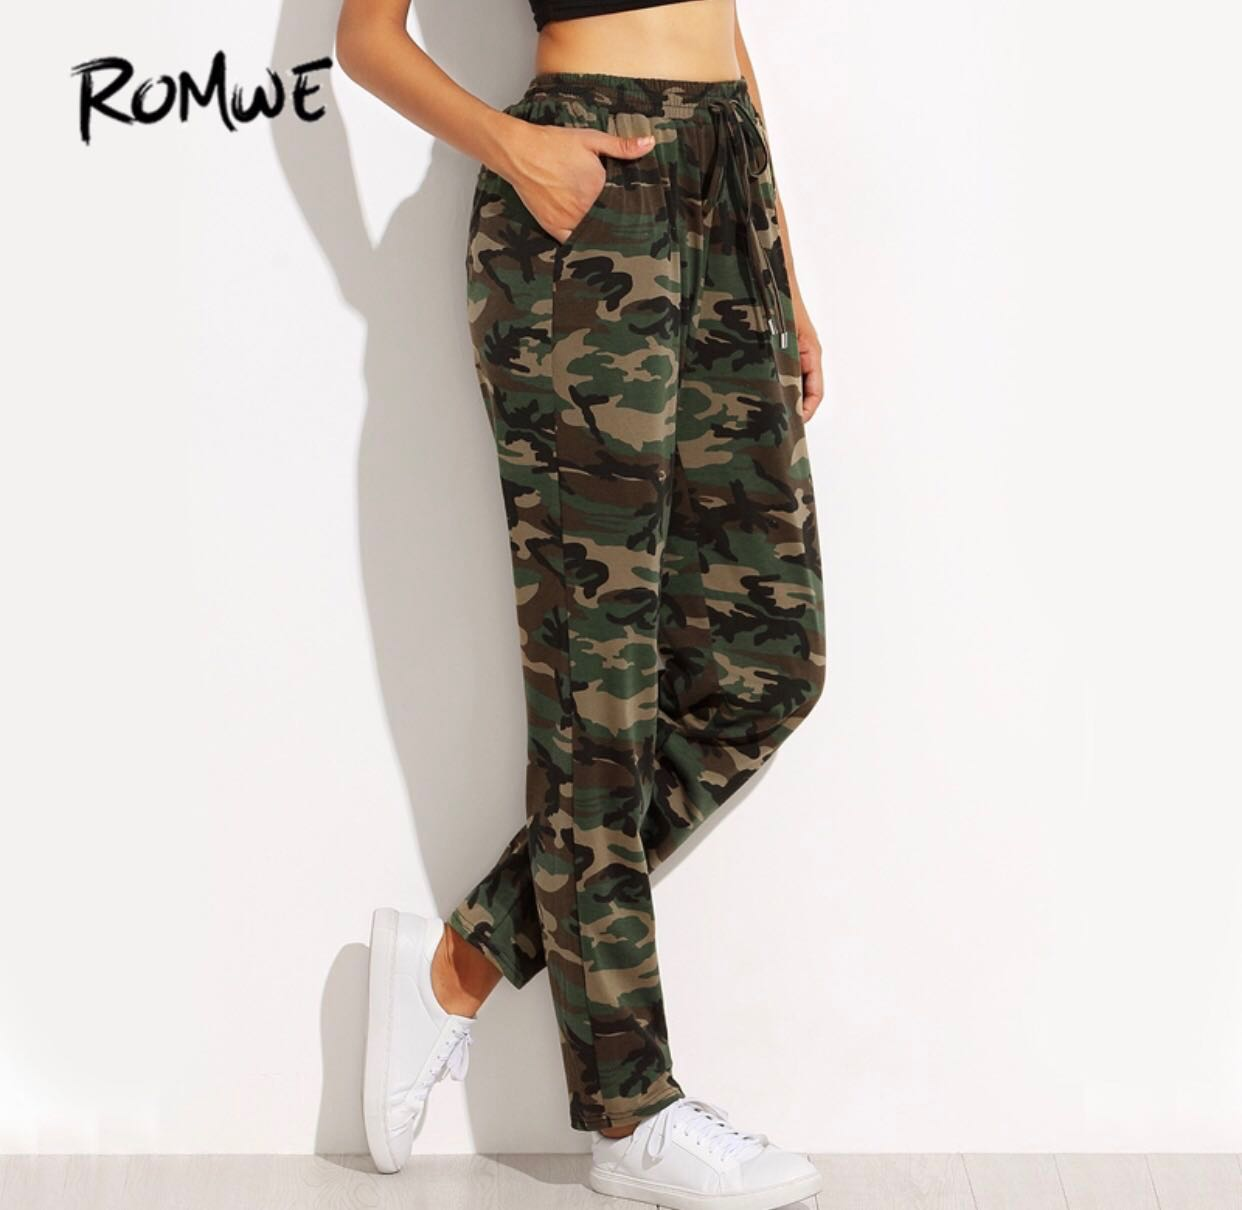 bb564c814ce5ac ✨[NEW] FREE NM✨ Womens Green Camo Army Sweatpants / Joggers ✨, Women's  Fashion, Clothes, Pants, Jeans & Shorts on Carousell